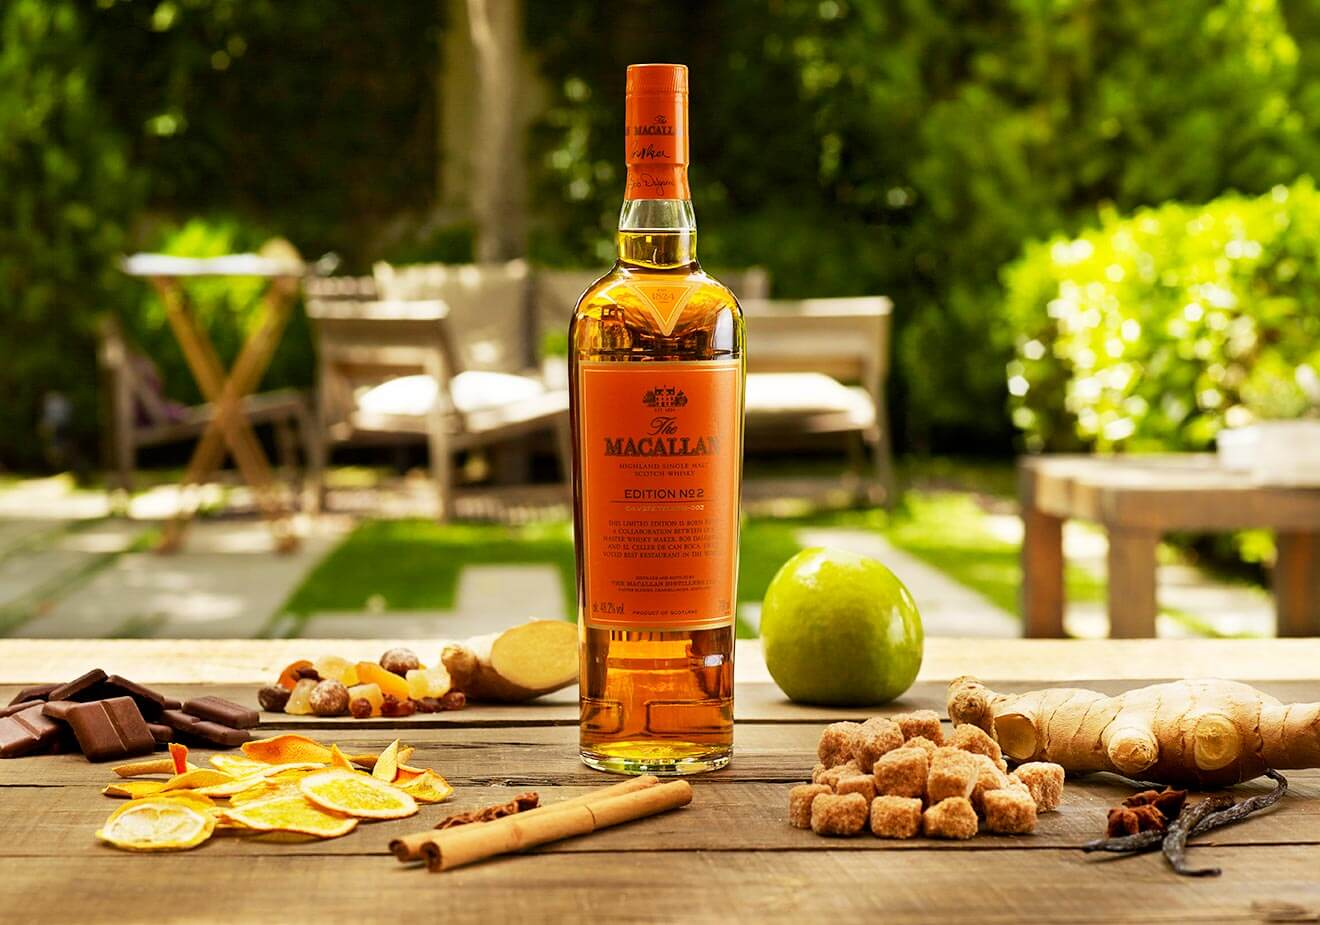 The Macallan Reveals Edition No. 2, bottle table display